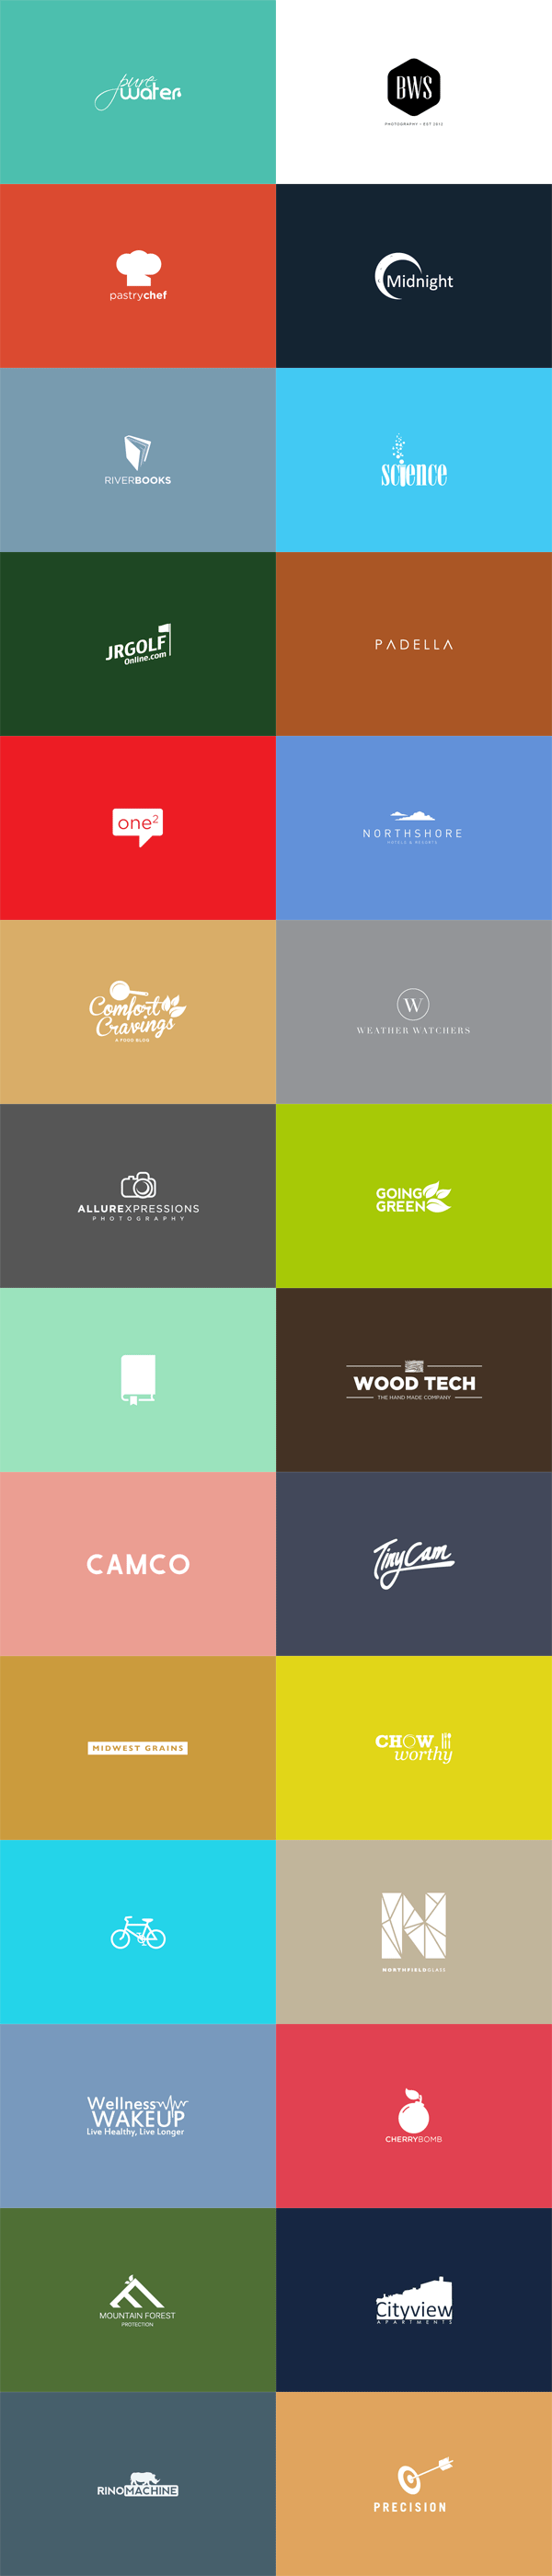 LogoFolio no.1 by Brandon Williams